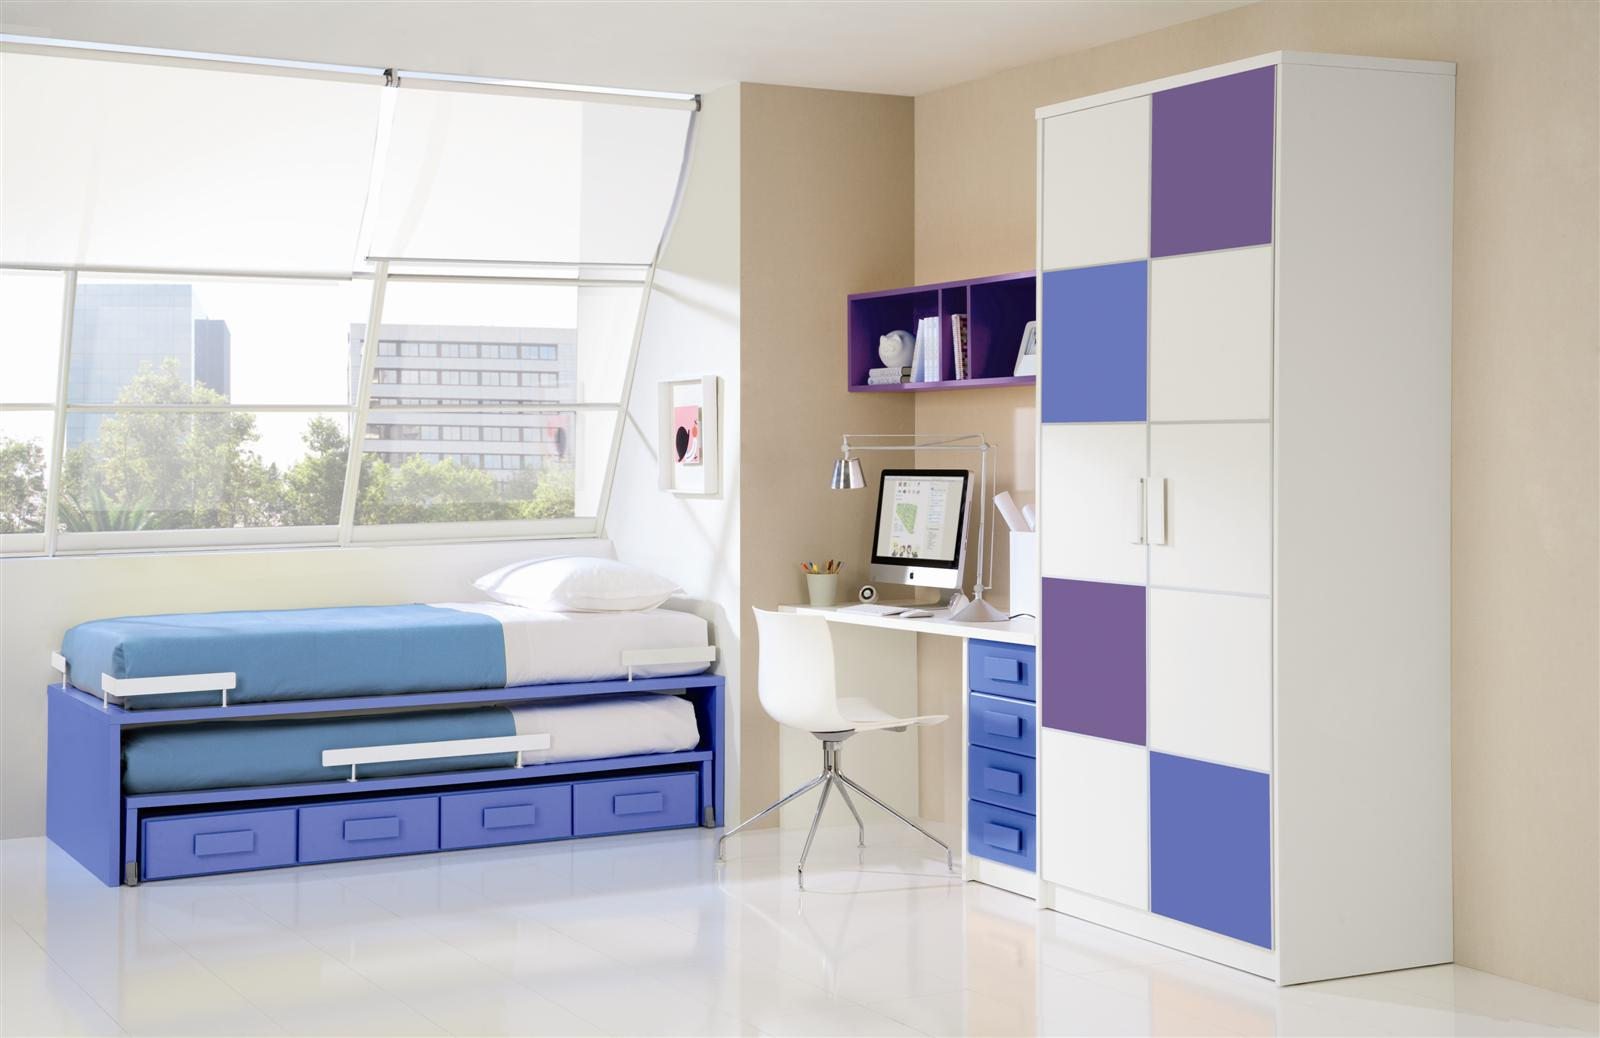 Bedroom designer for kids - Best Modern Bedroom Vanity Sets Furniture Design Kids Bedroom Furniture For Girls